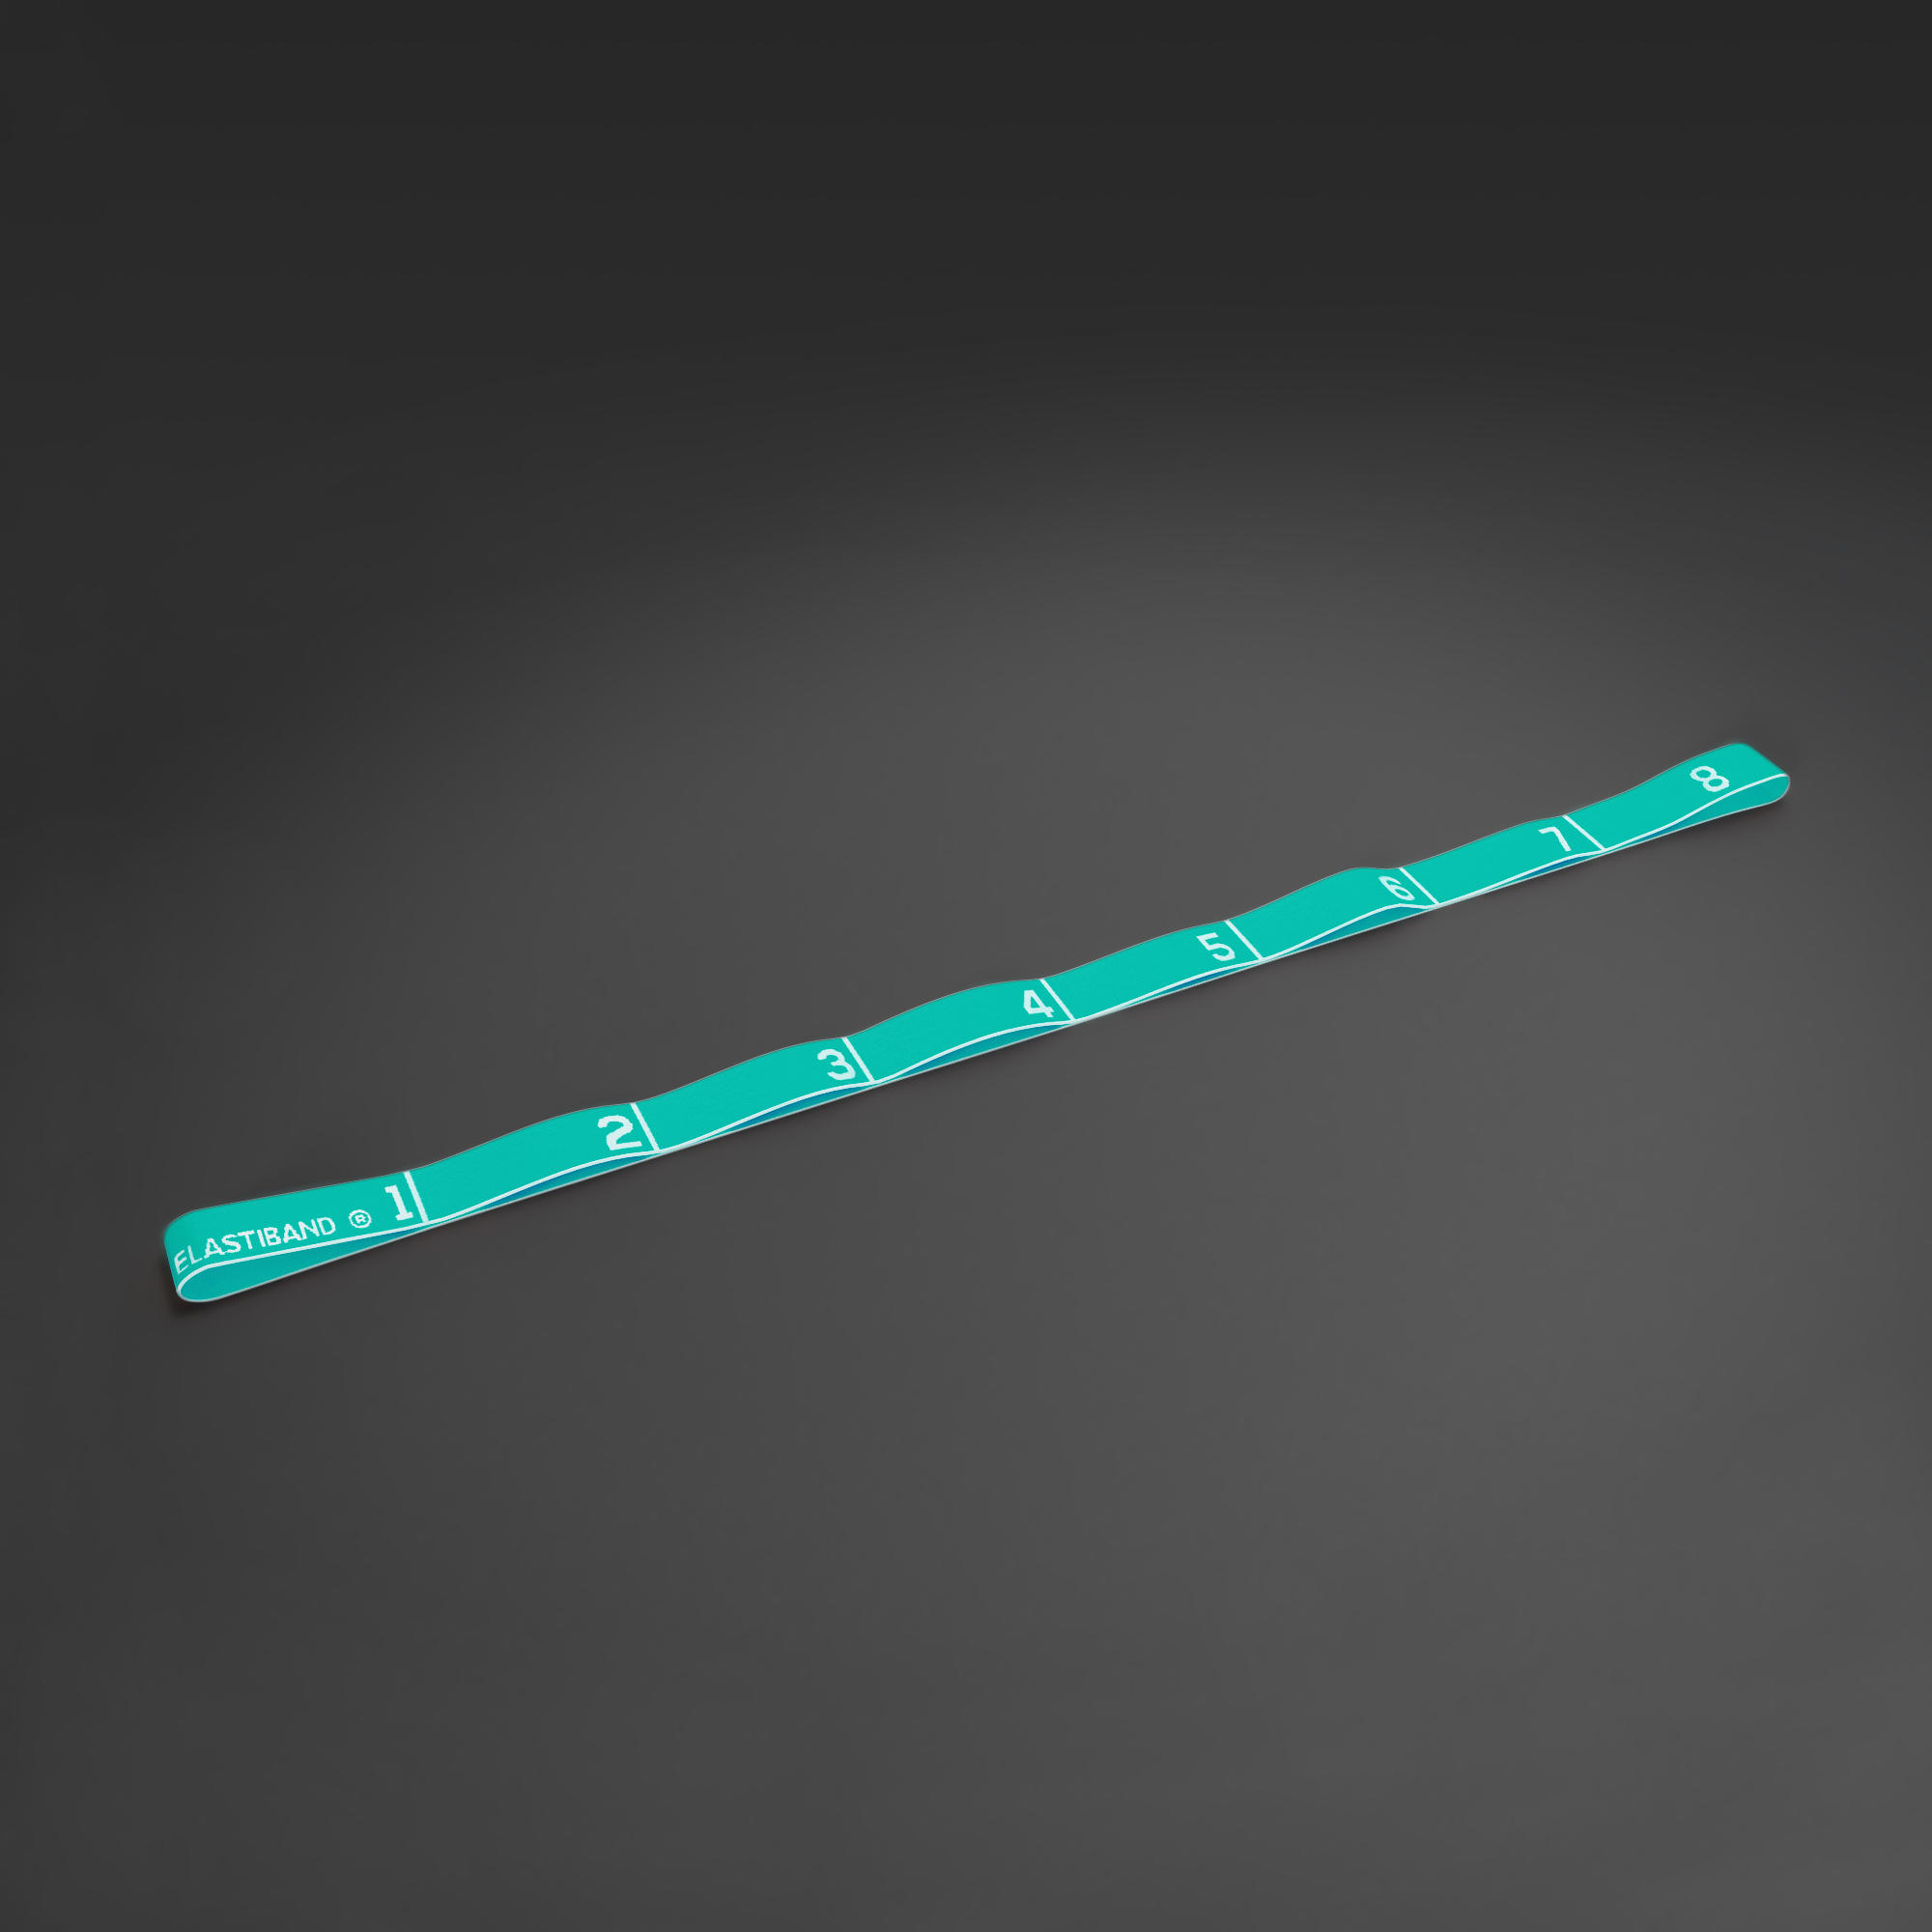 500 Pilates Stretching Fabric Elastic Band with Handles Light Resistance